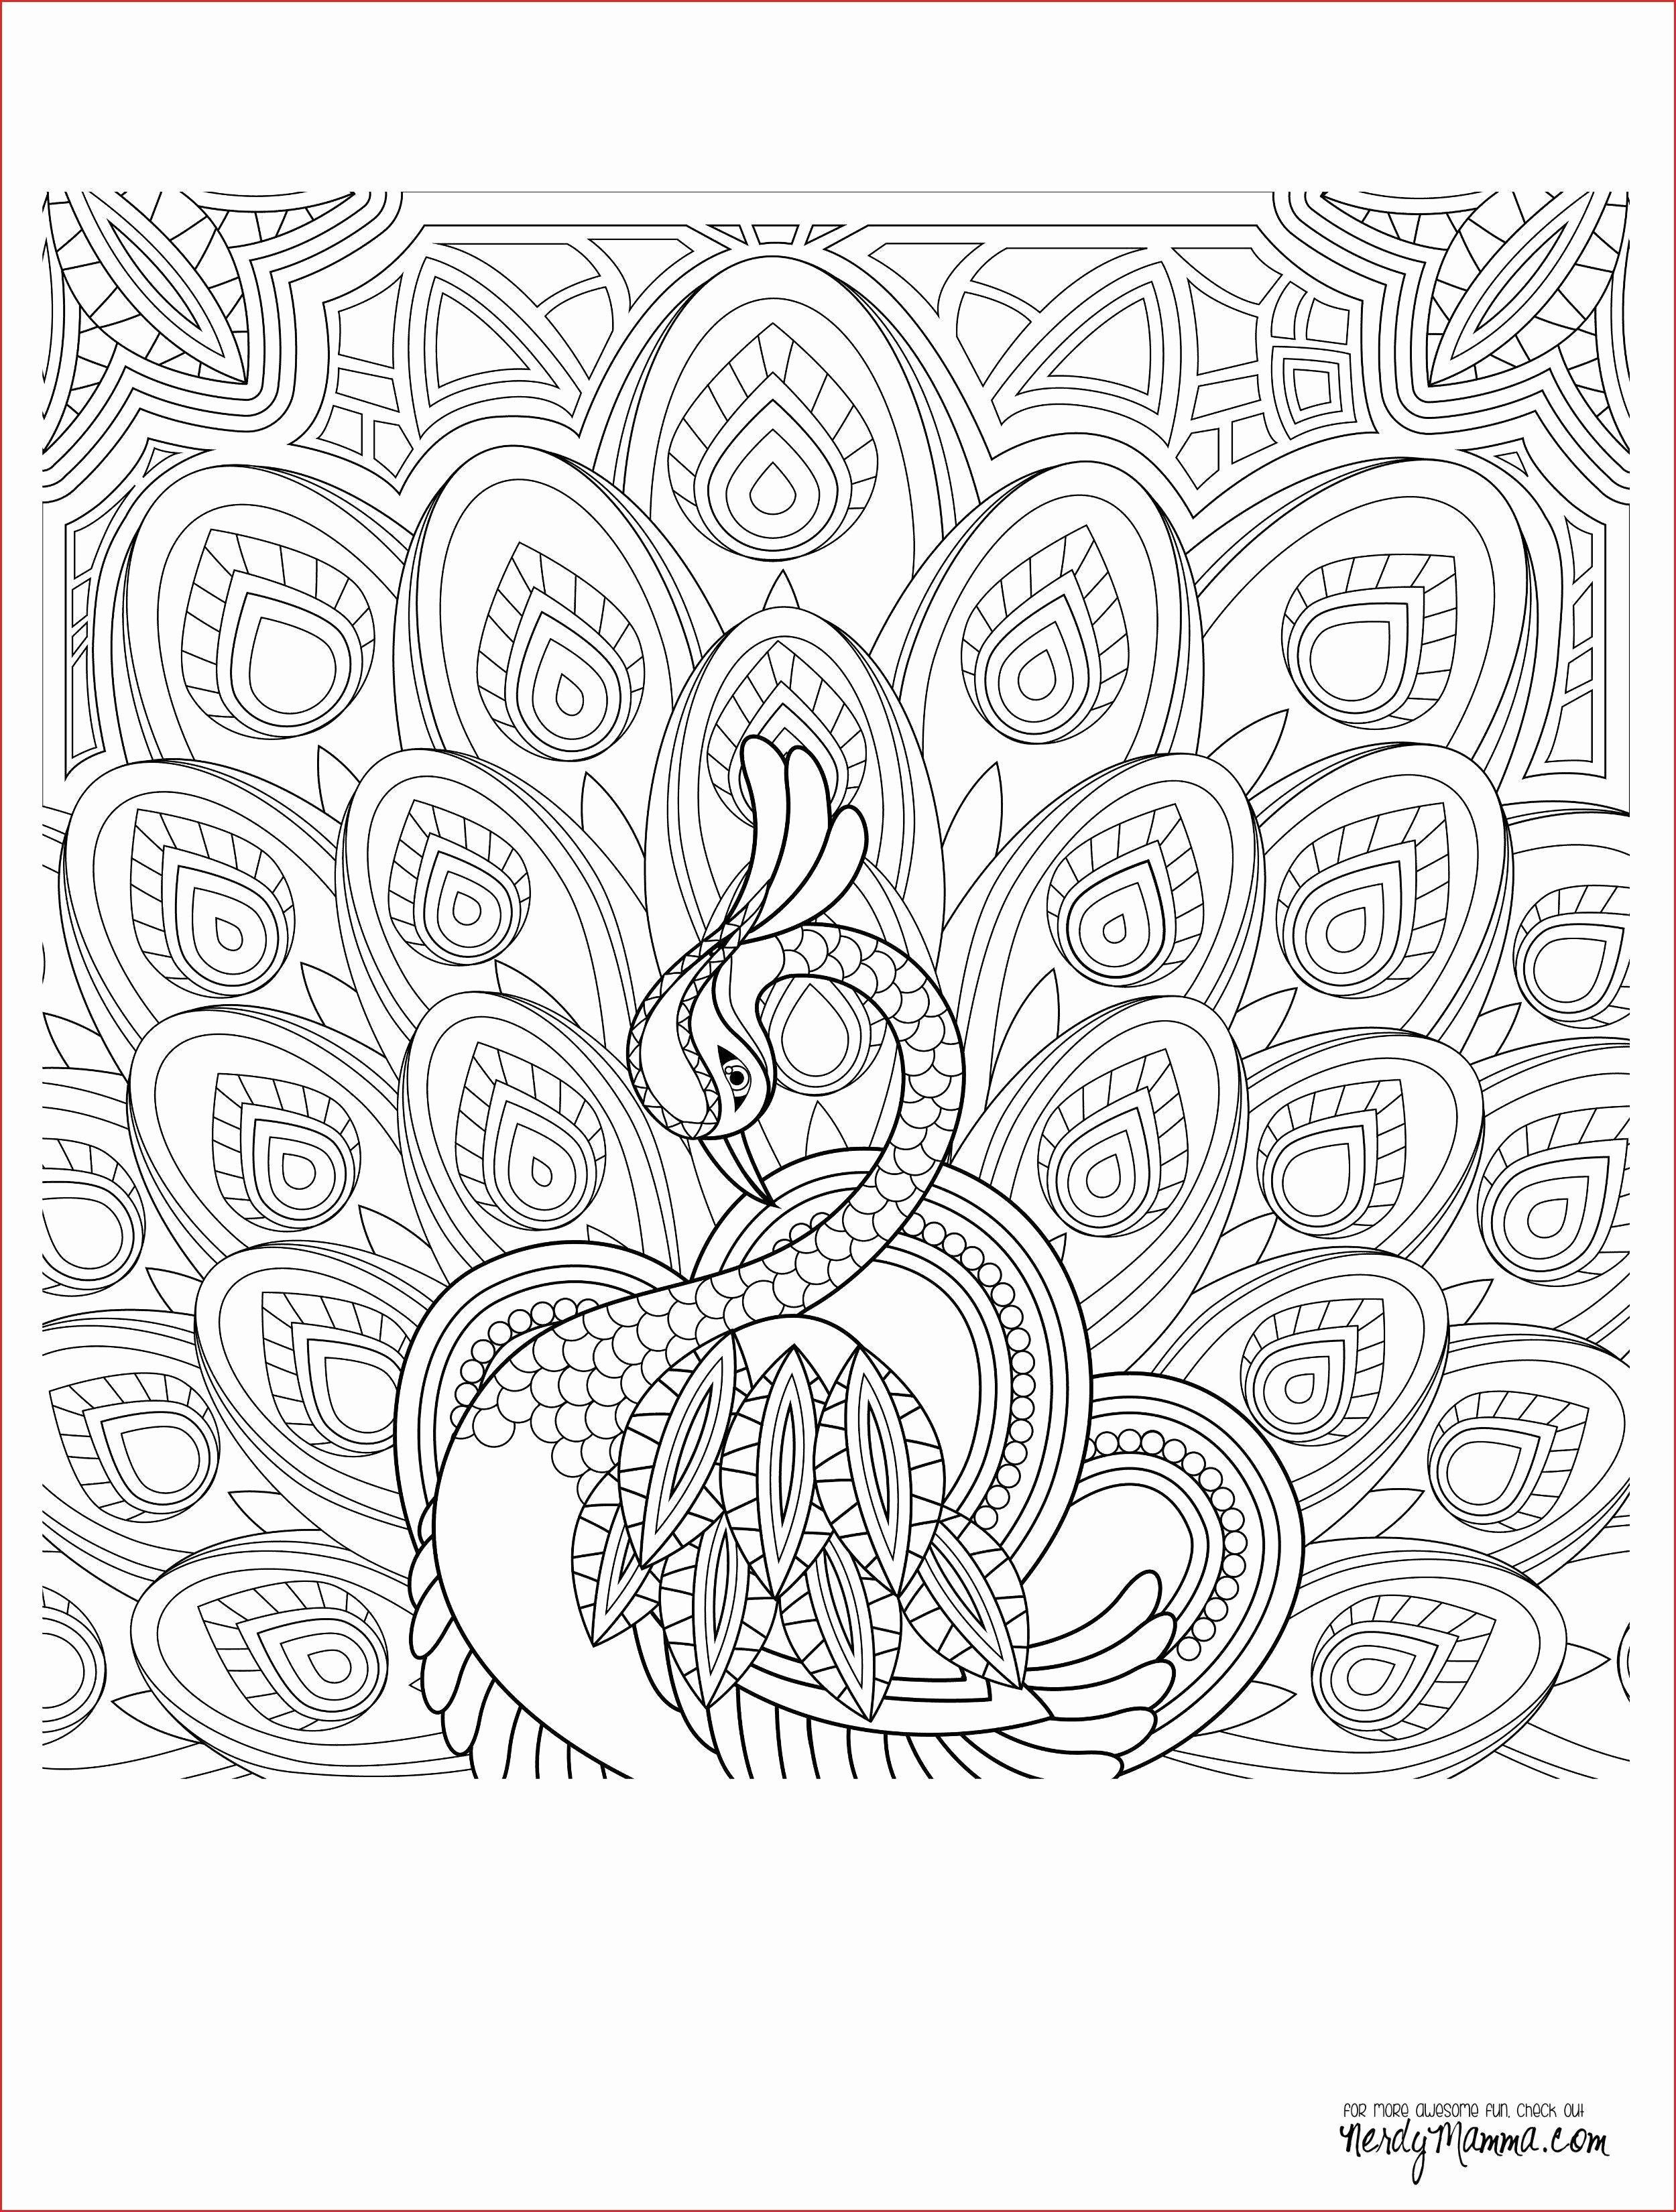 Coloring Page Space Rover New Lamborghini Coloring Page Mandala Coloring Pages Love Coloring Pages Animal Coloring Pages [ 3300 x 2500 Pixel ]